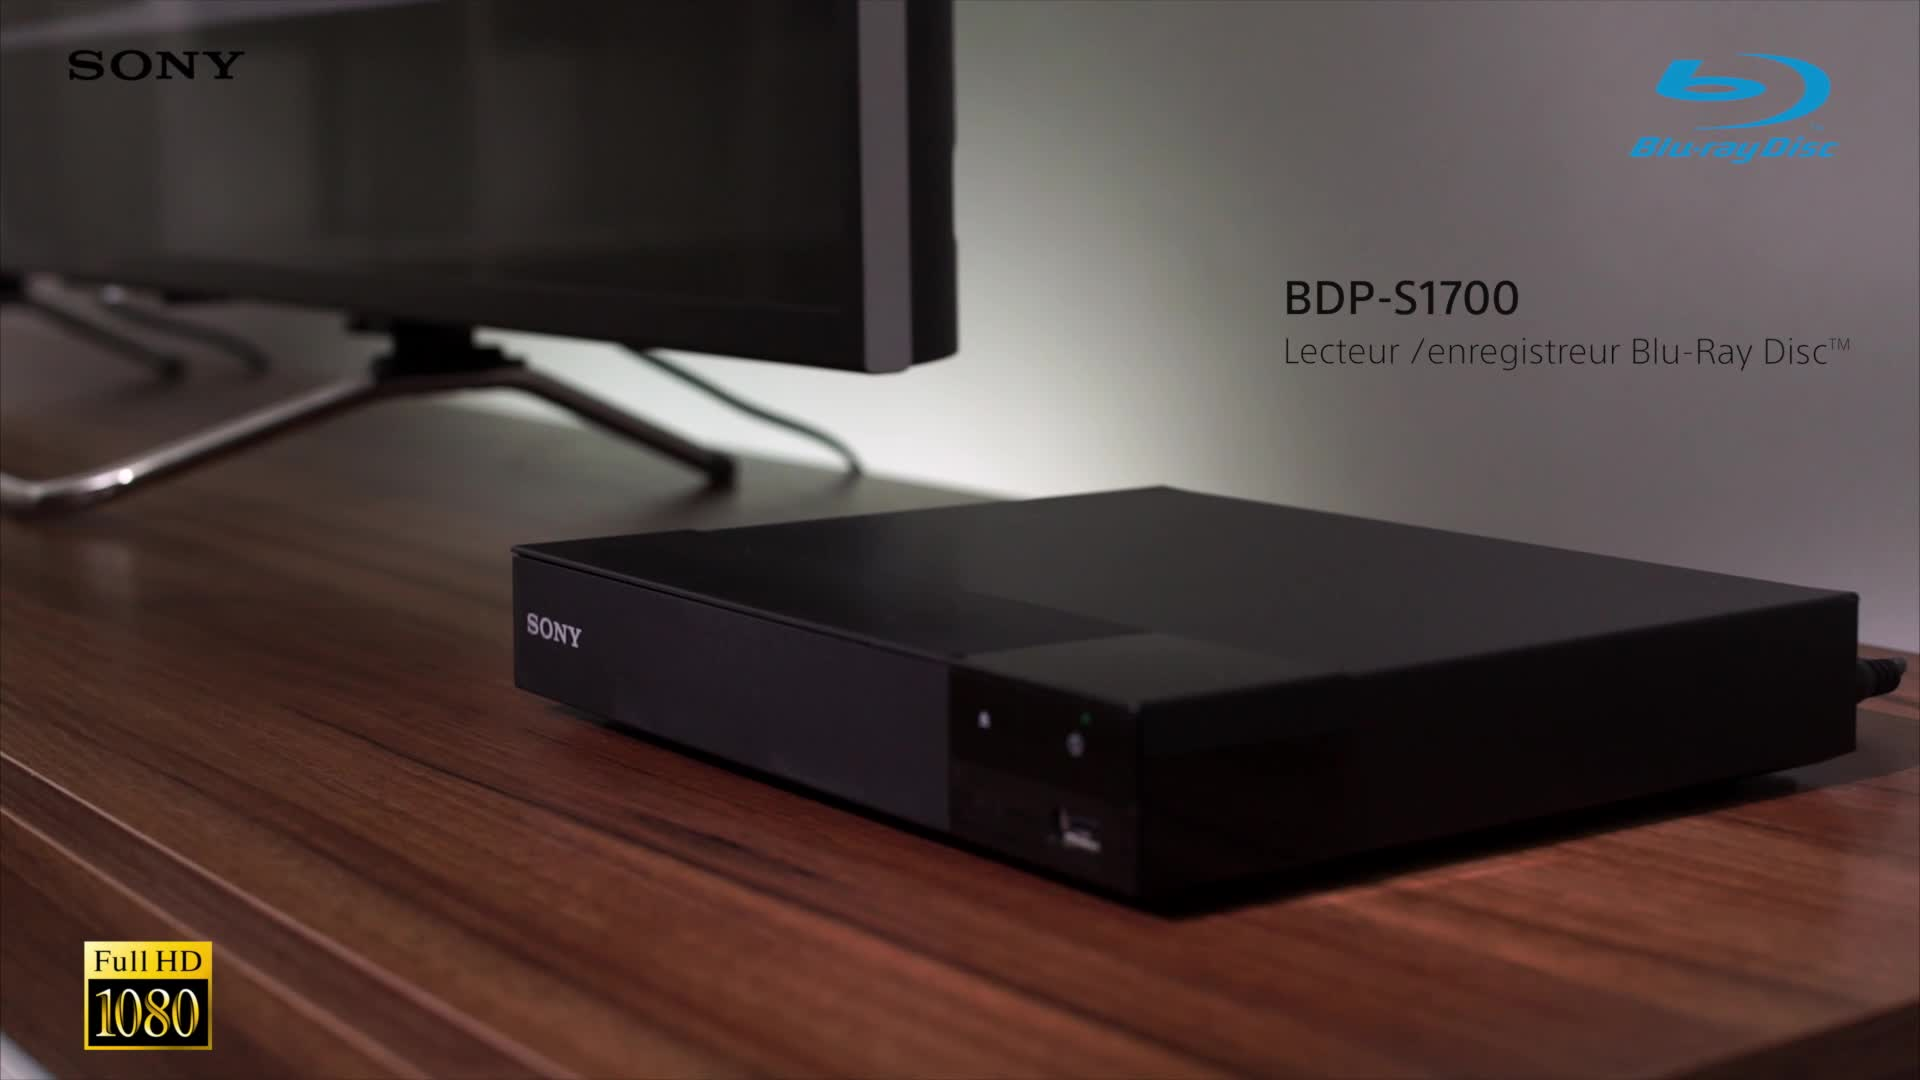 lecteur blu ray disc sony bdp s1700 lecteur dvd blu ray achat prix fnac. Black Bedroom Furniture Sets. Home Design Ideas